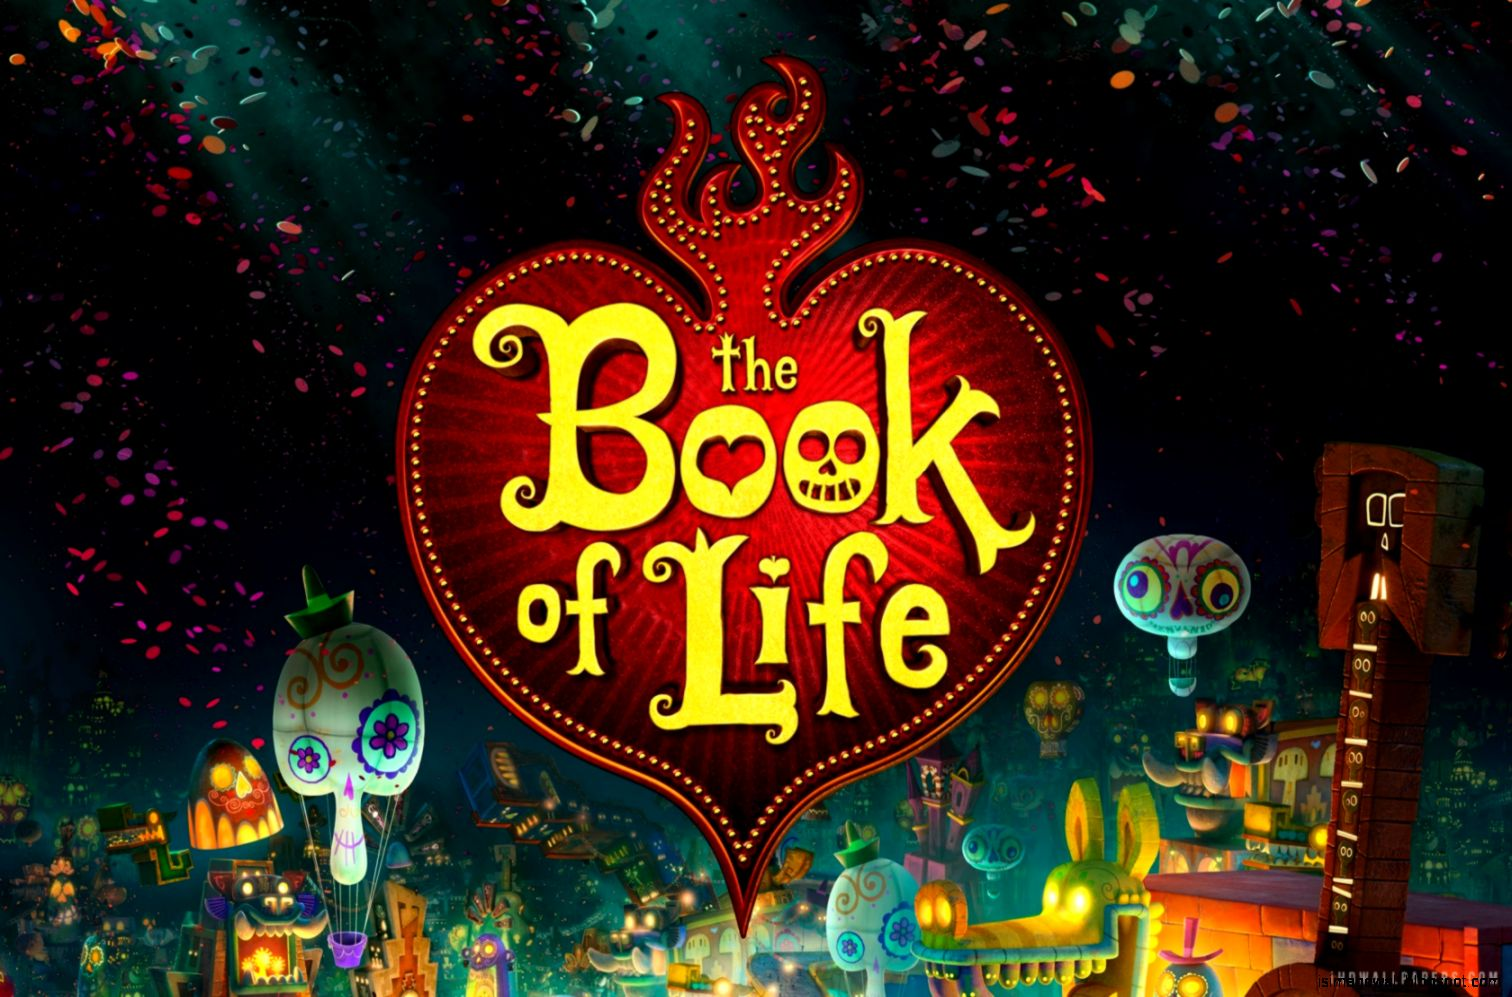 The Book Of Life Wallpaper Image Wallpapers